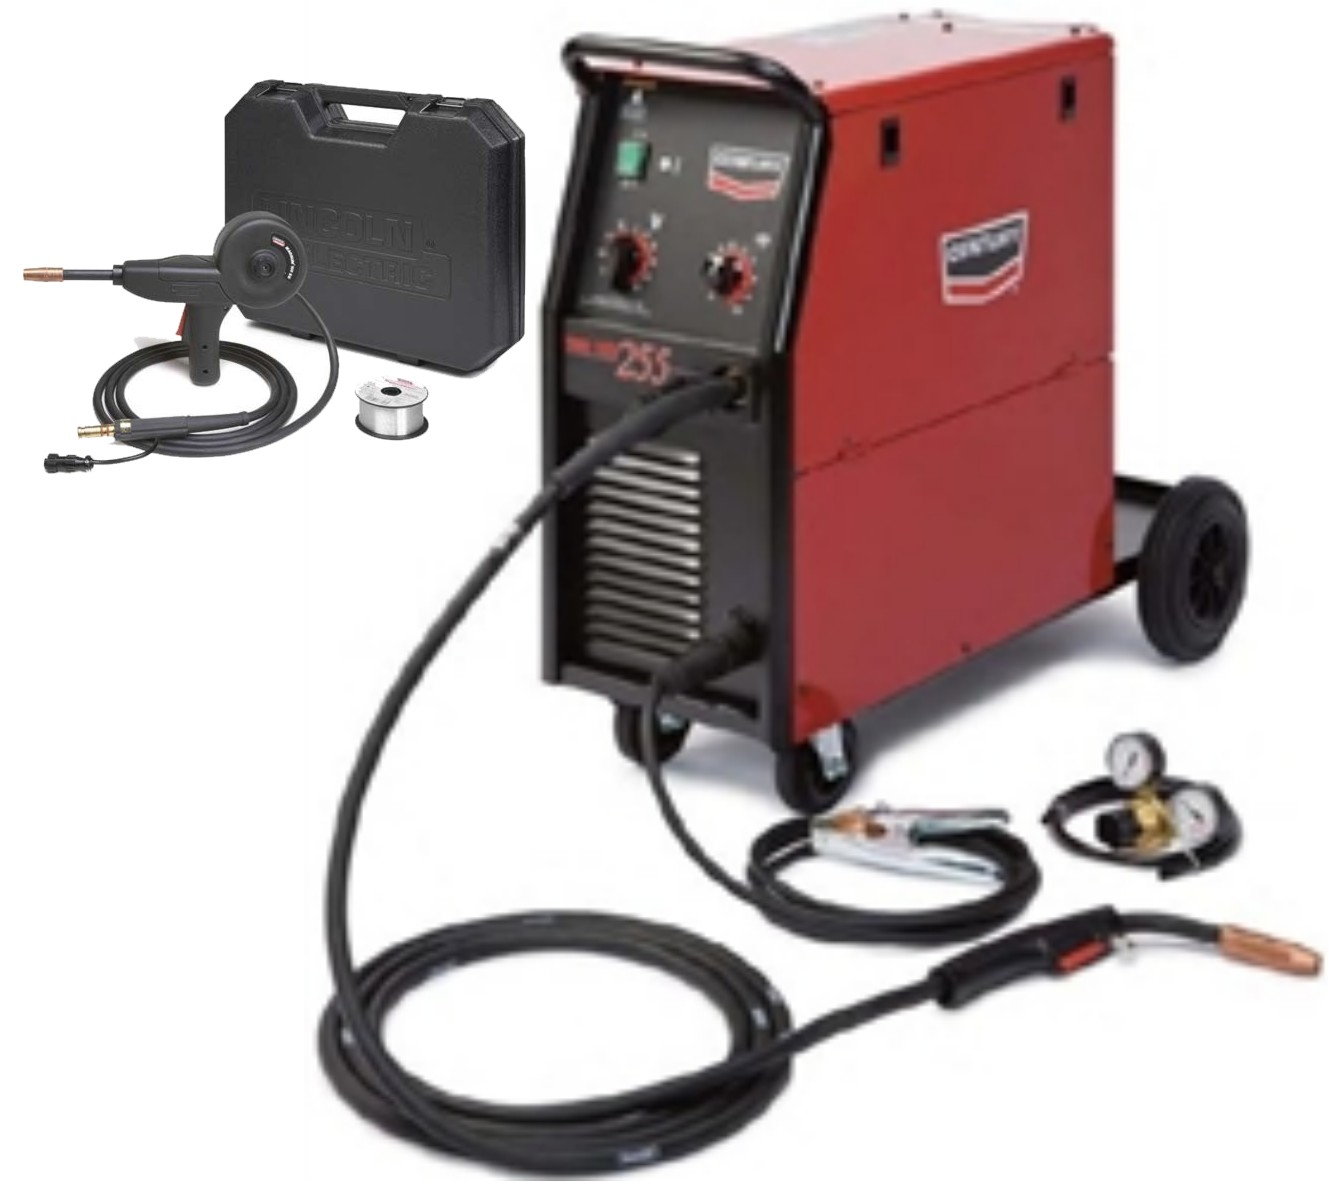 Century Lincoln K2783 1s Wire Feed 255 Mig Welder With Bonus Spool Gun 1370 73 Free Shipping Norris Equipment Company